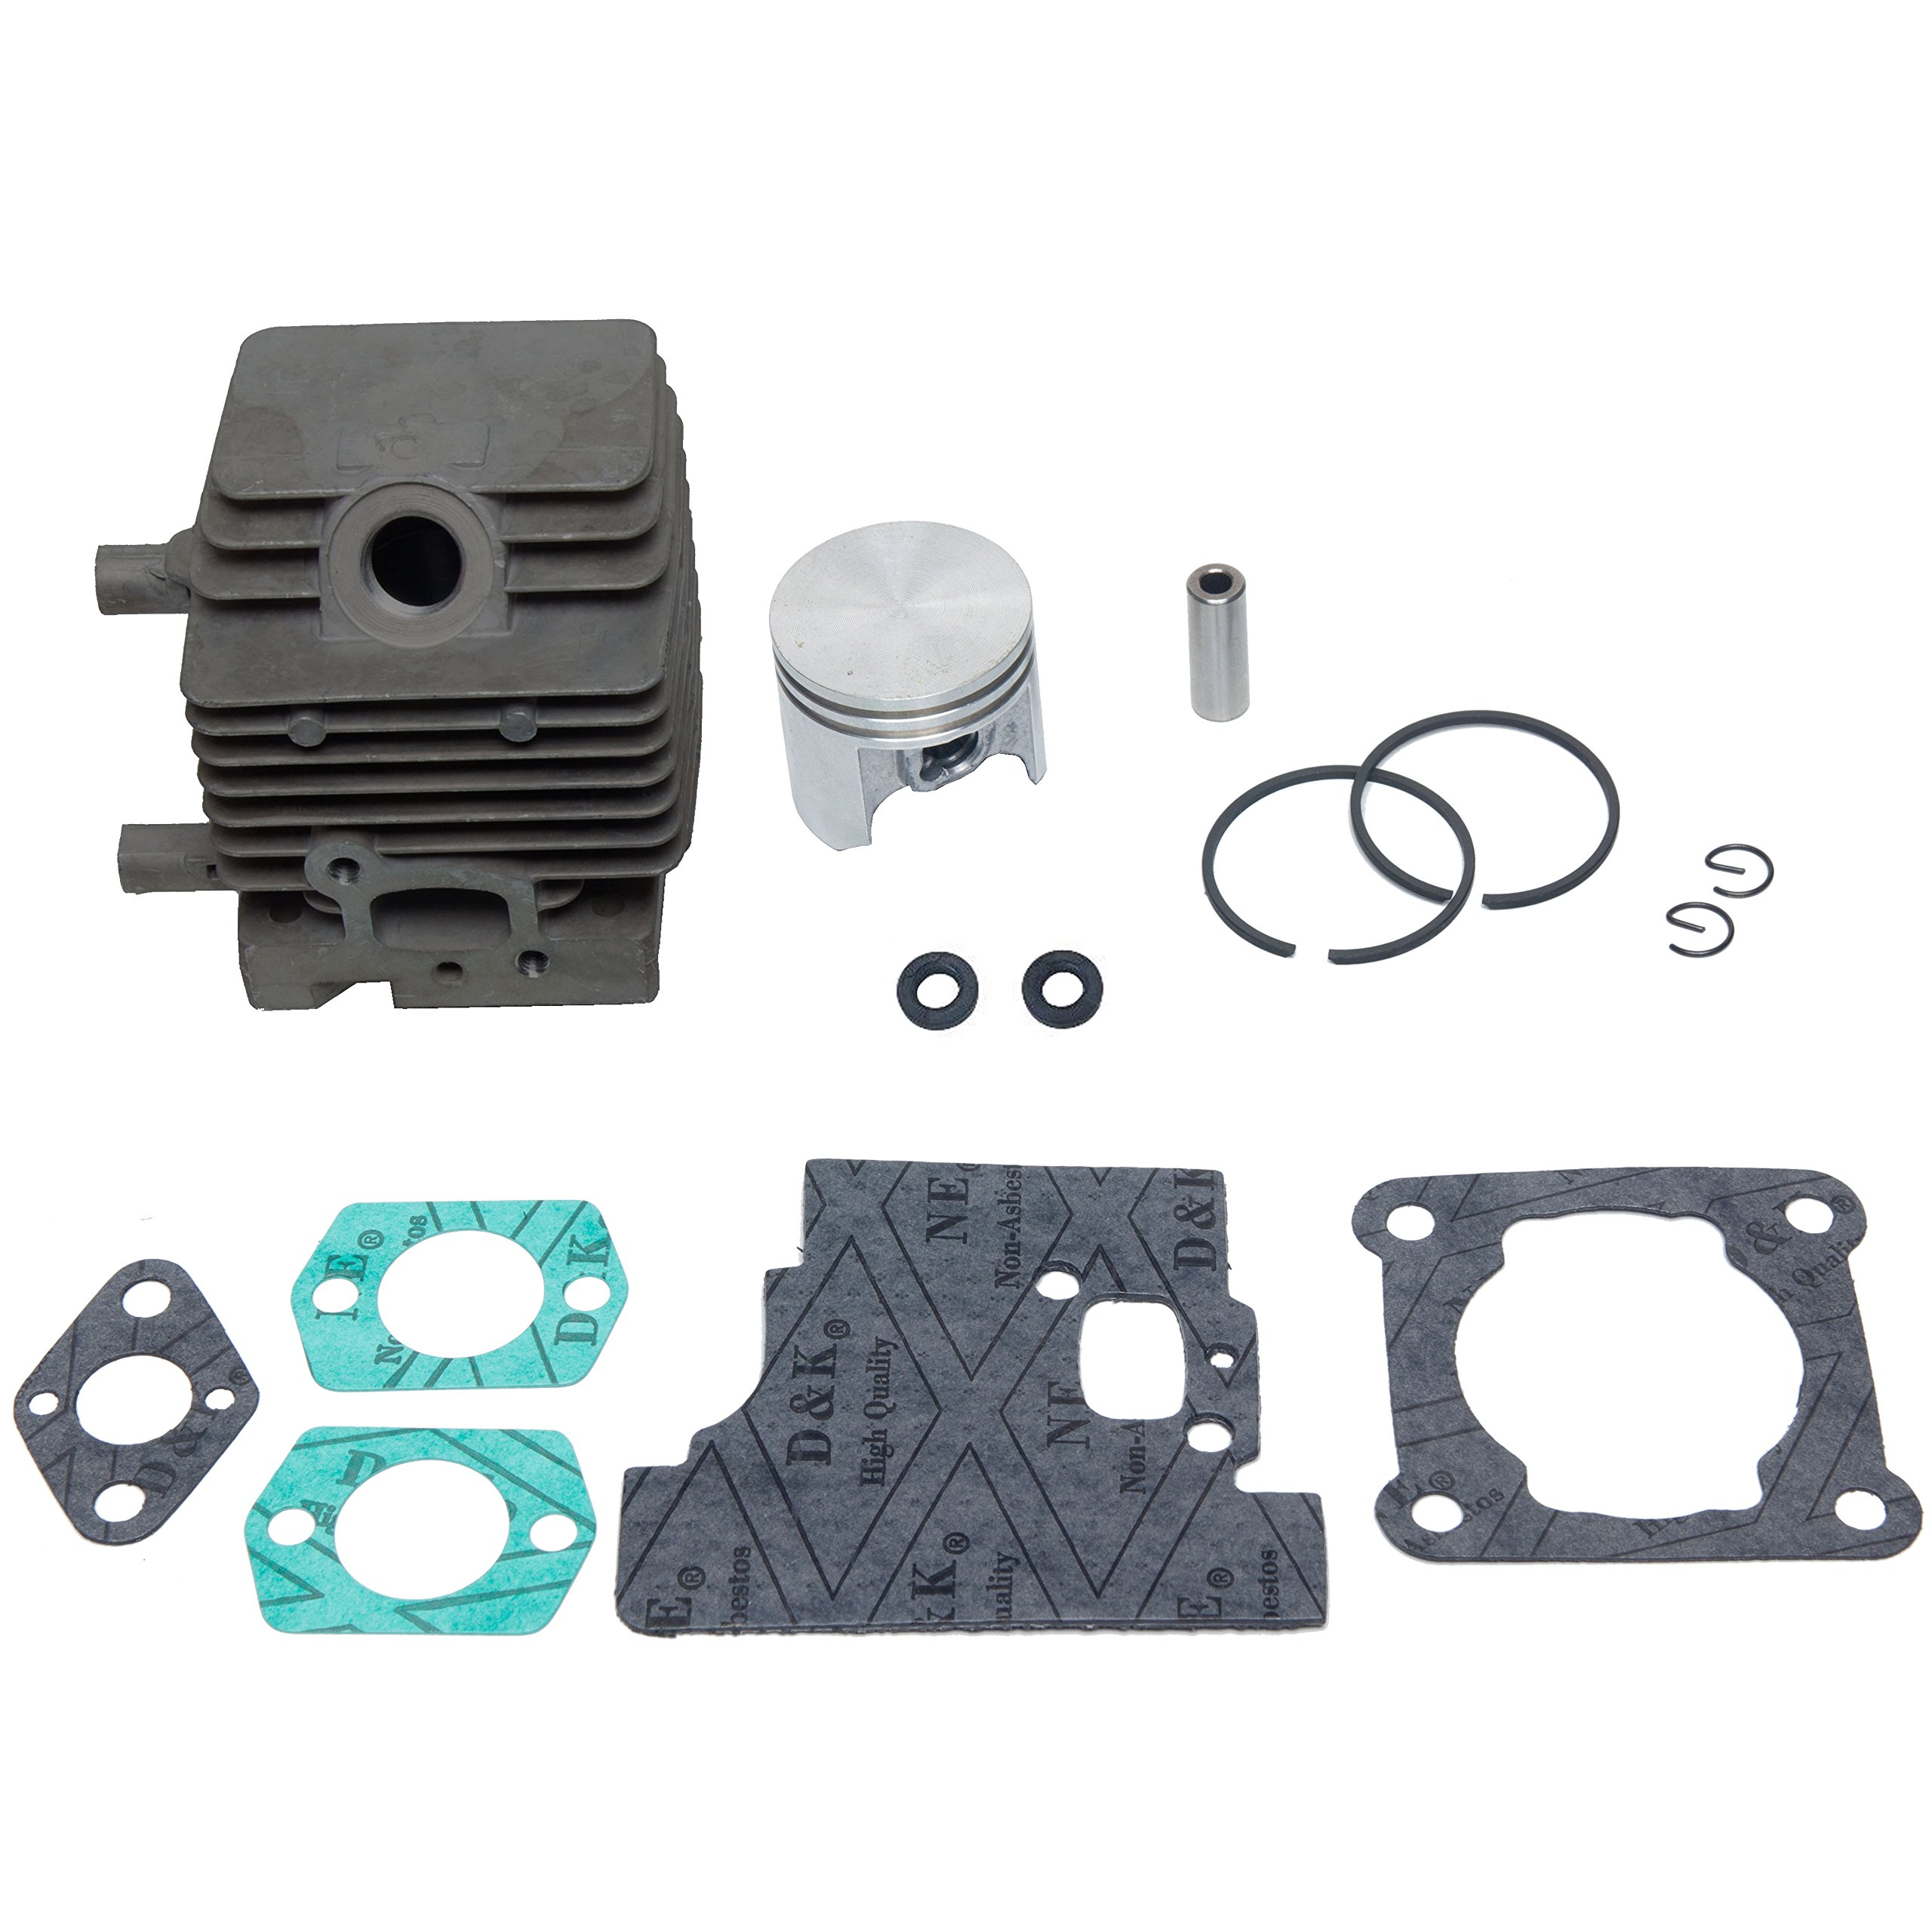 SPERTEK Cylinder & Piston Kit + Gasket Kit for Stihl FS75 FS80 FS85 34mm (W/2 Oil Seals)